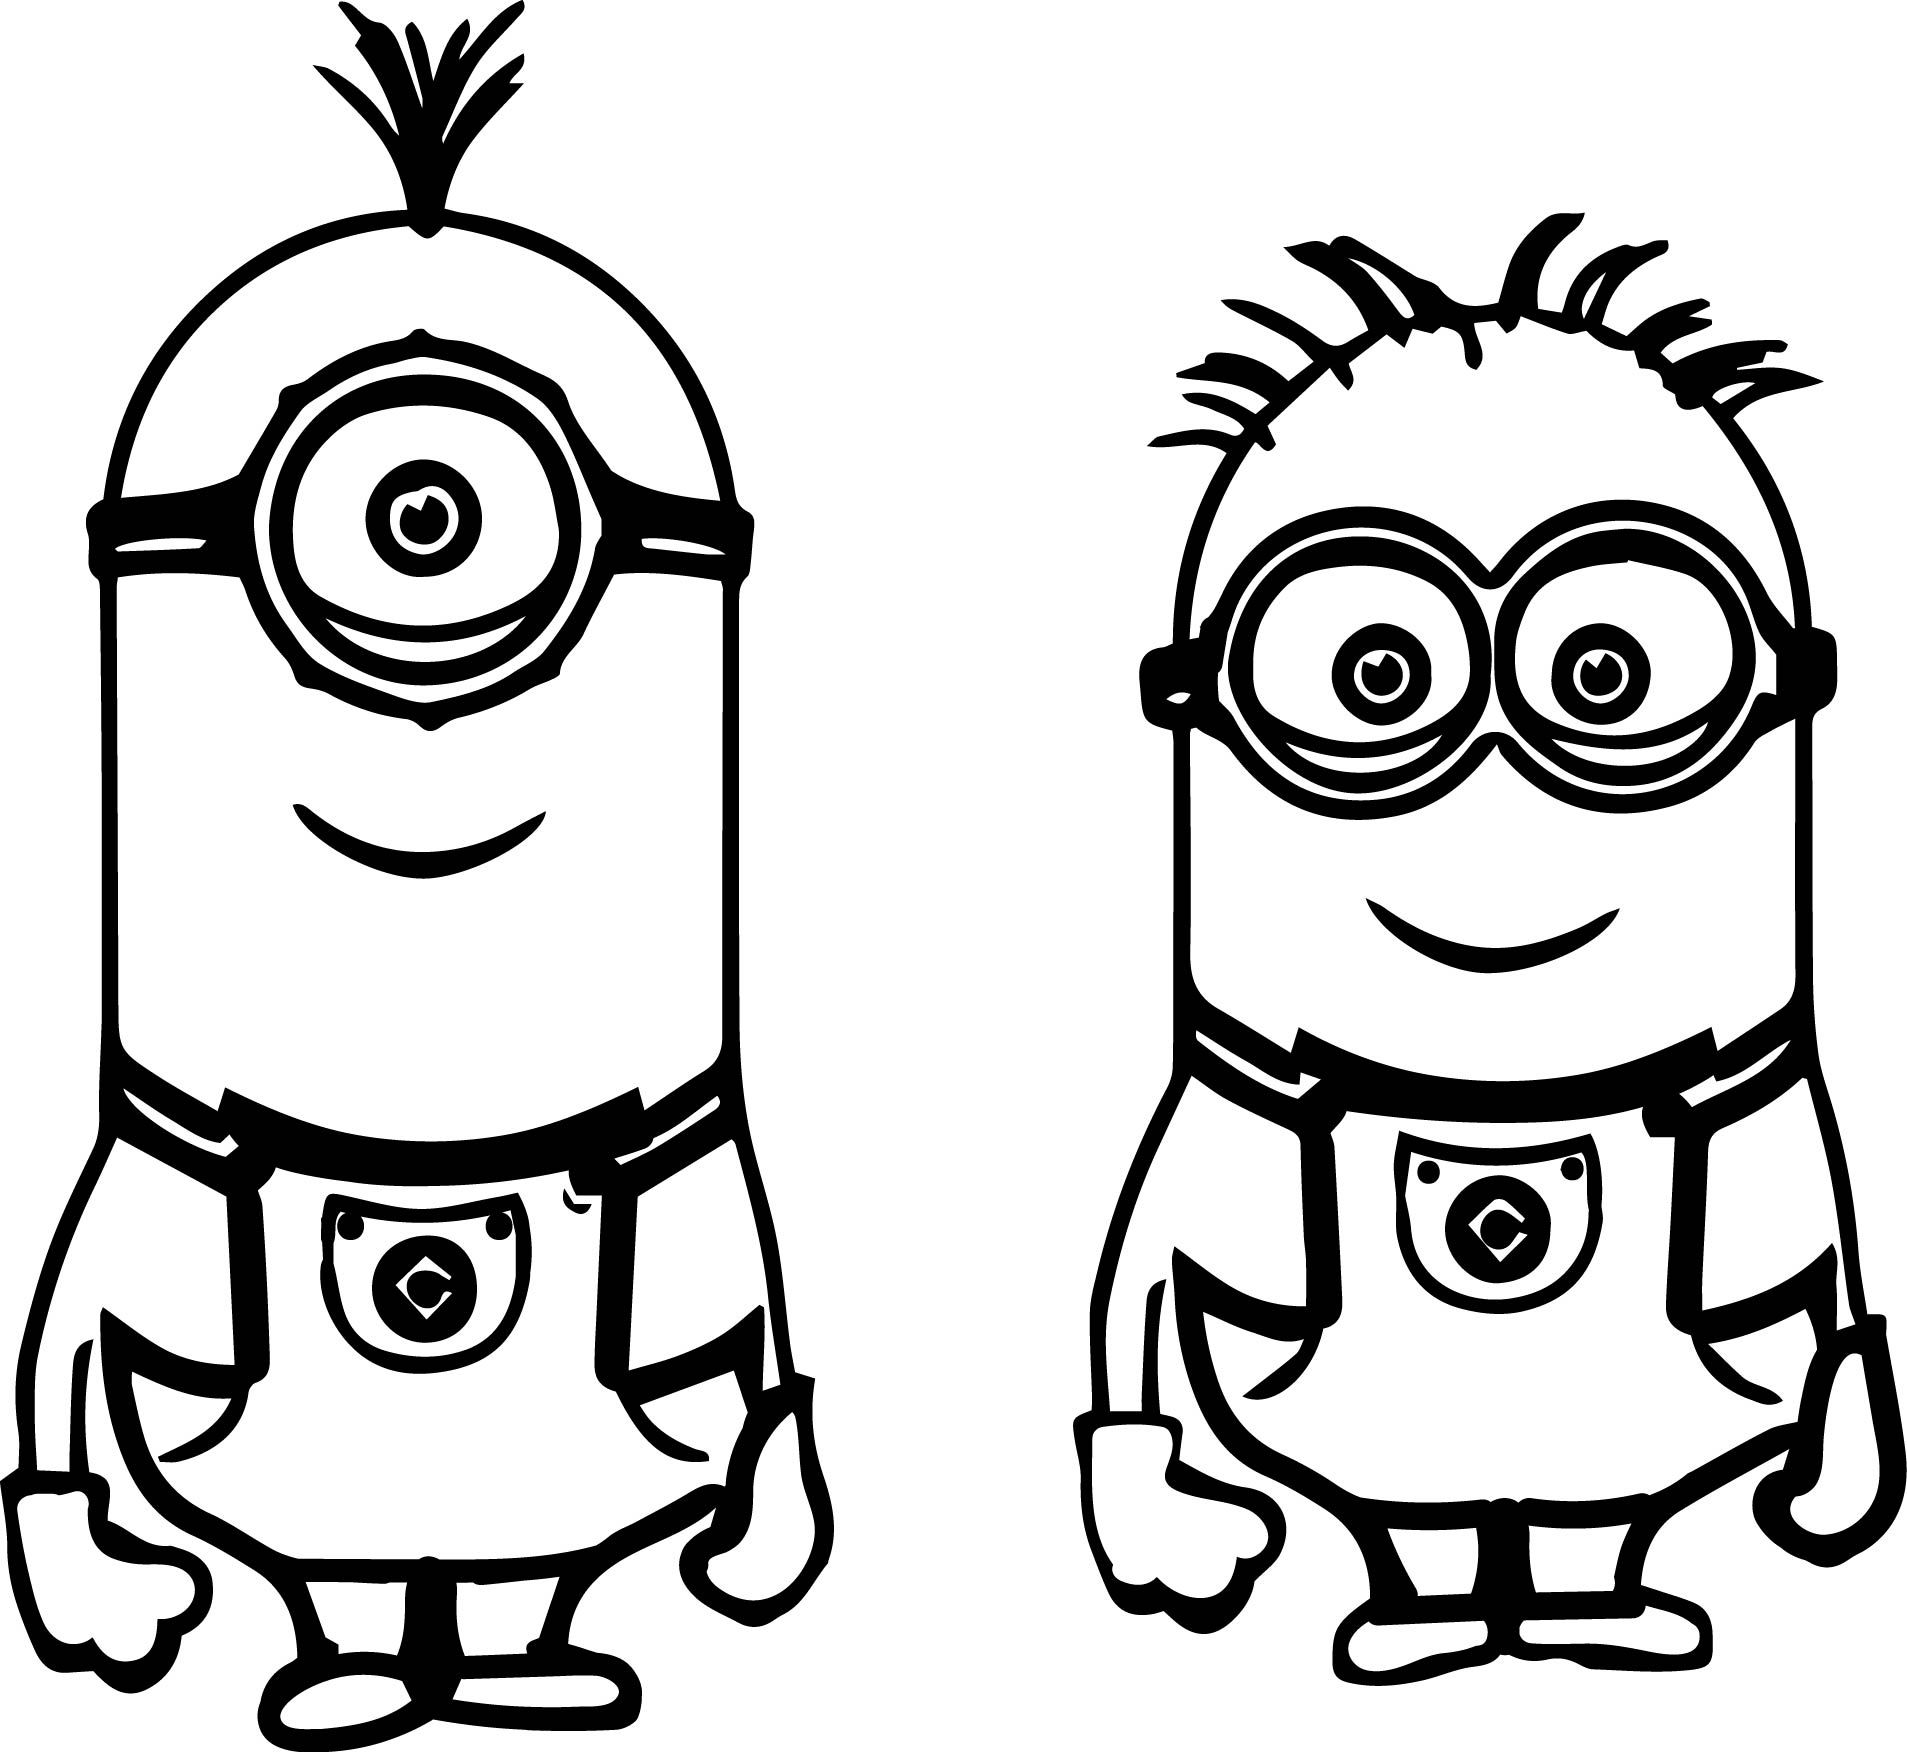 Minion Coloring Pages Printable For Kids Minions Coloring Pages Minion Coloring Pages Minion Drawing